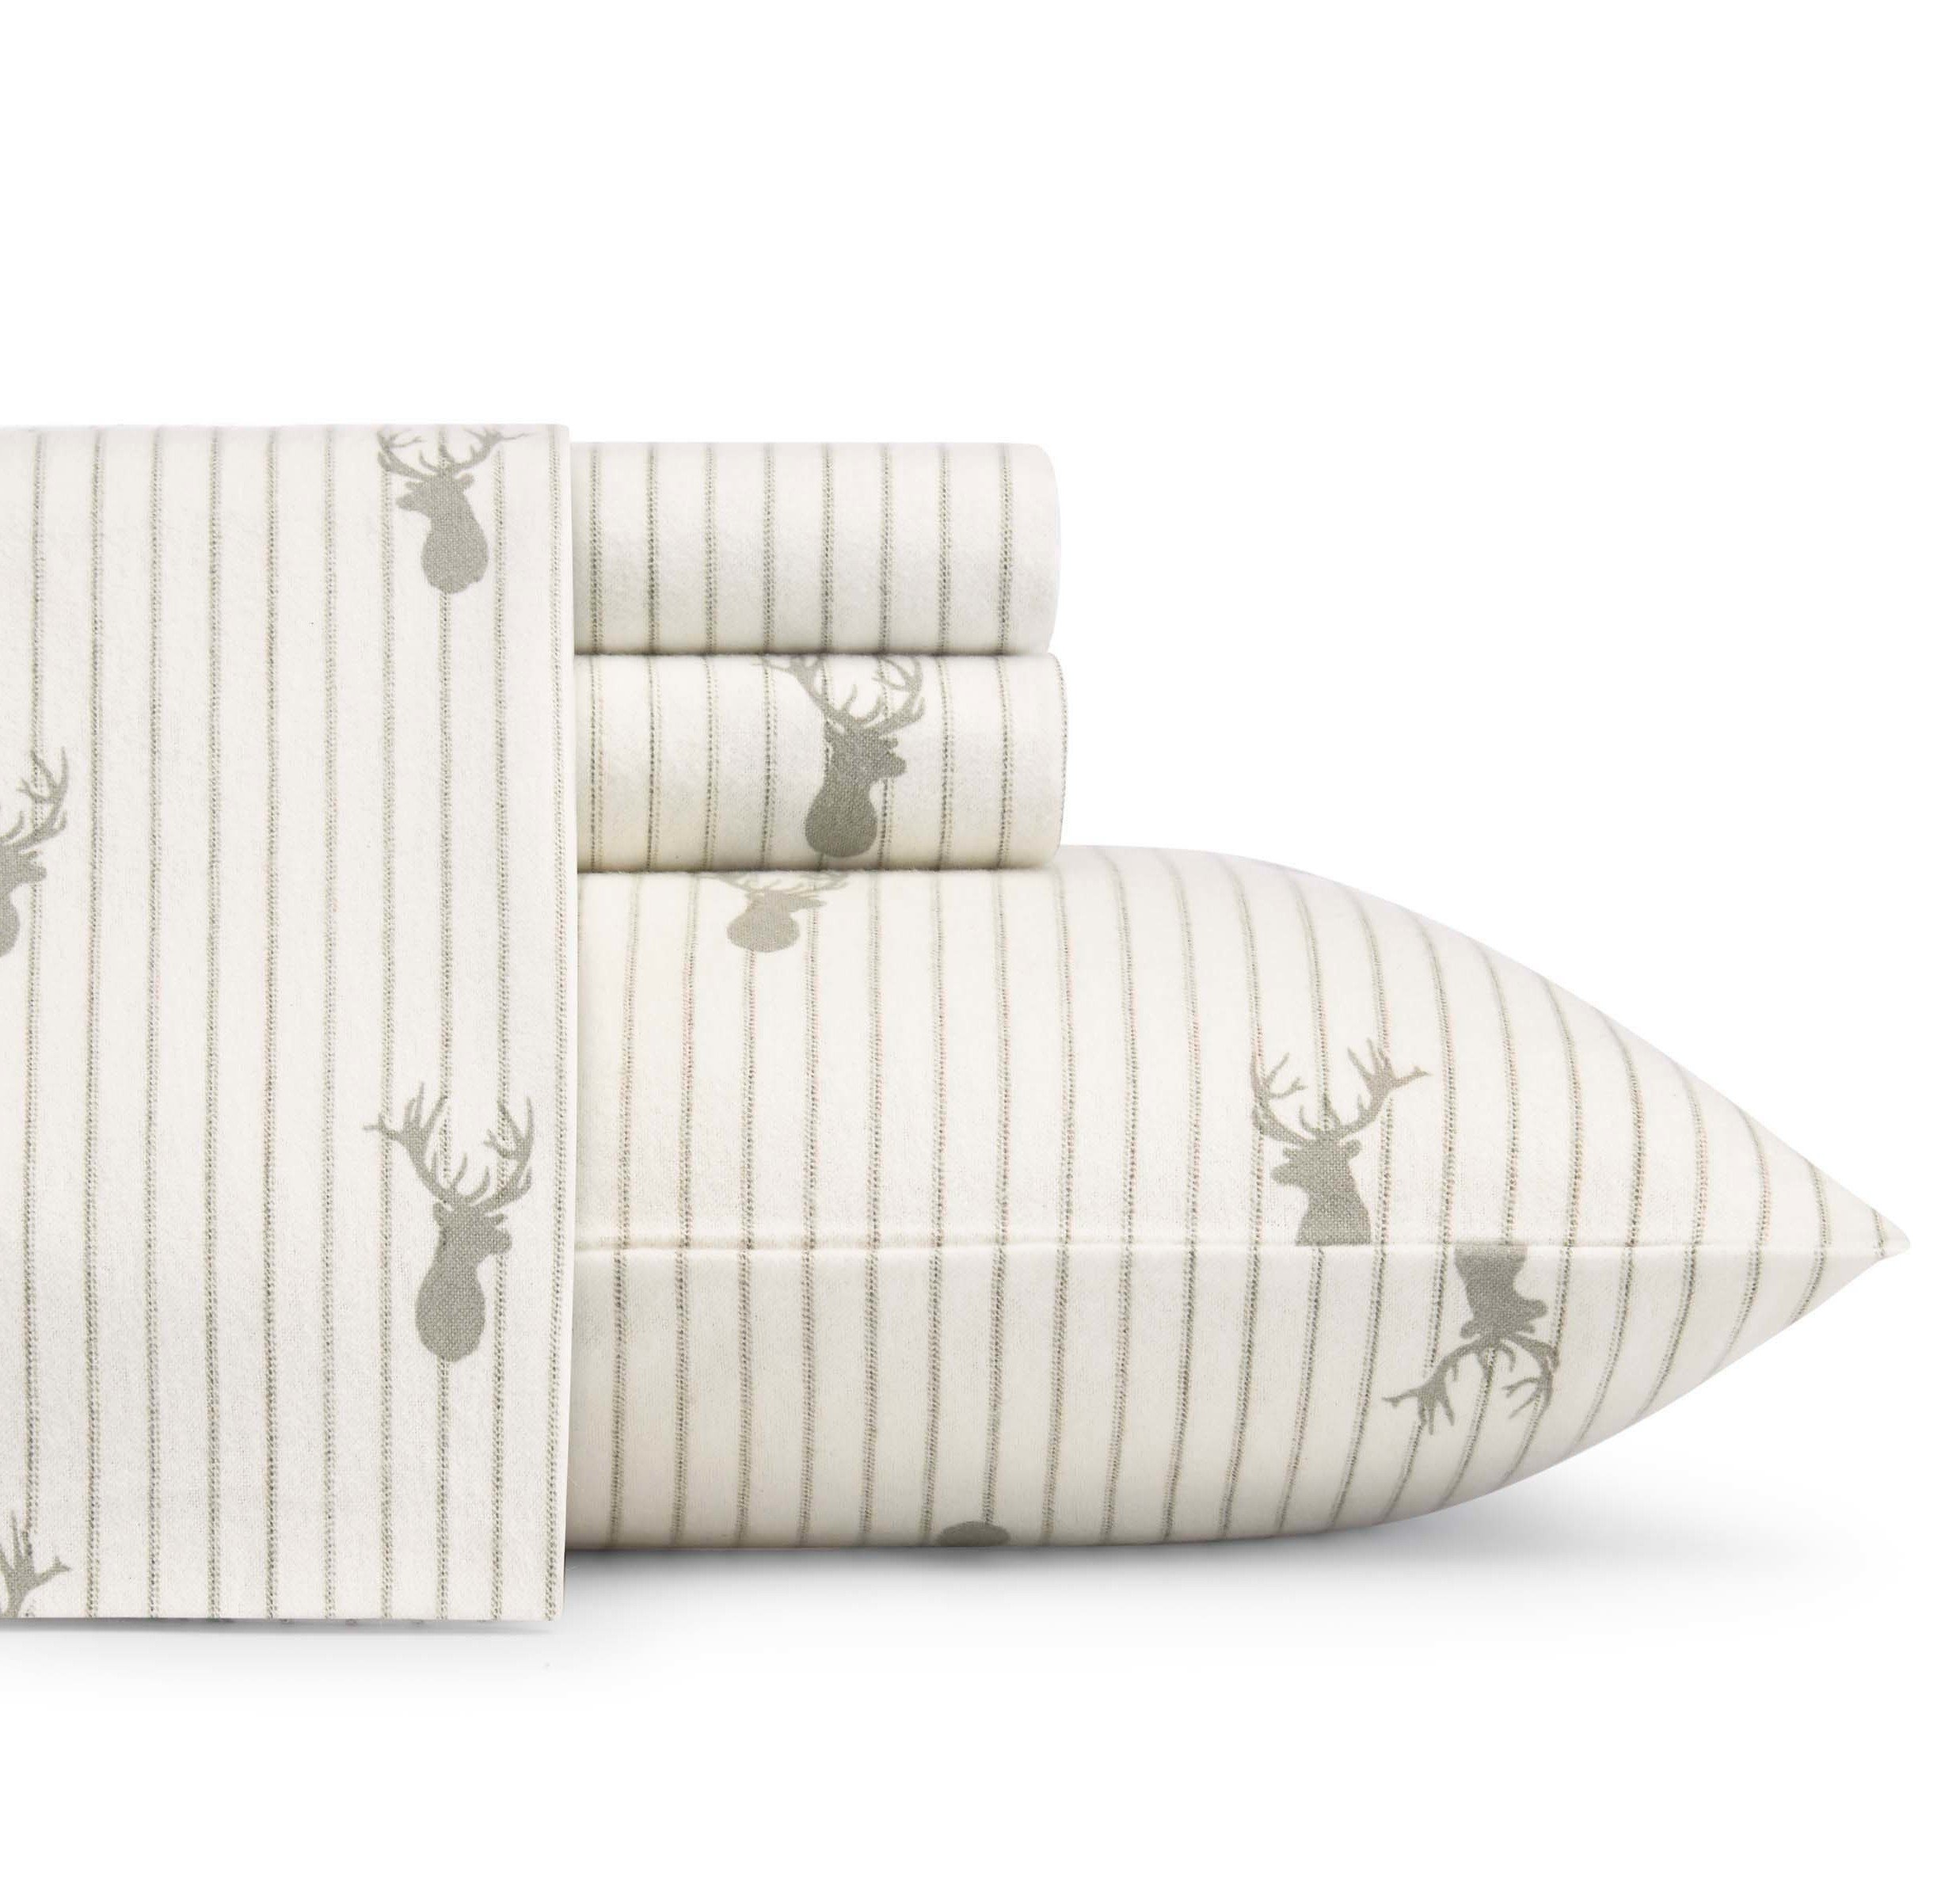 D&A 4 Piece Grey Ivory Deer Lodge Theme Sheets Queen Set, Beautiful Forest Wild Animal Hunting Cottage, Stripes Print, Fully Elasticized Fitted, Deep Pocket, Cotton Flannel